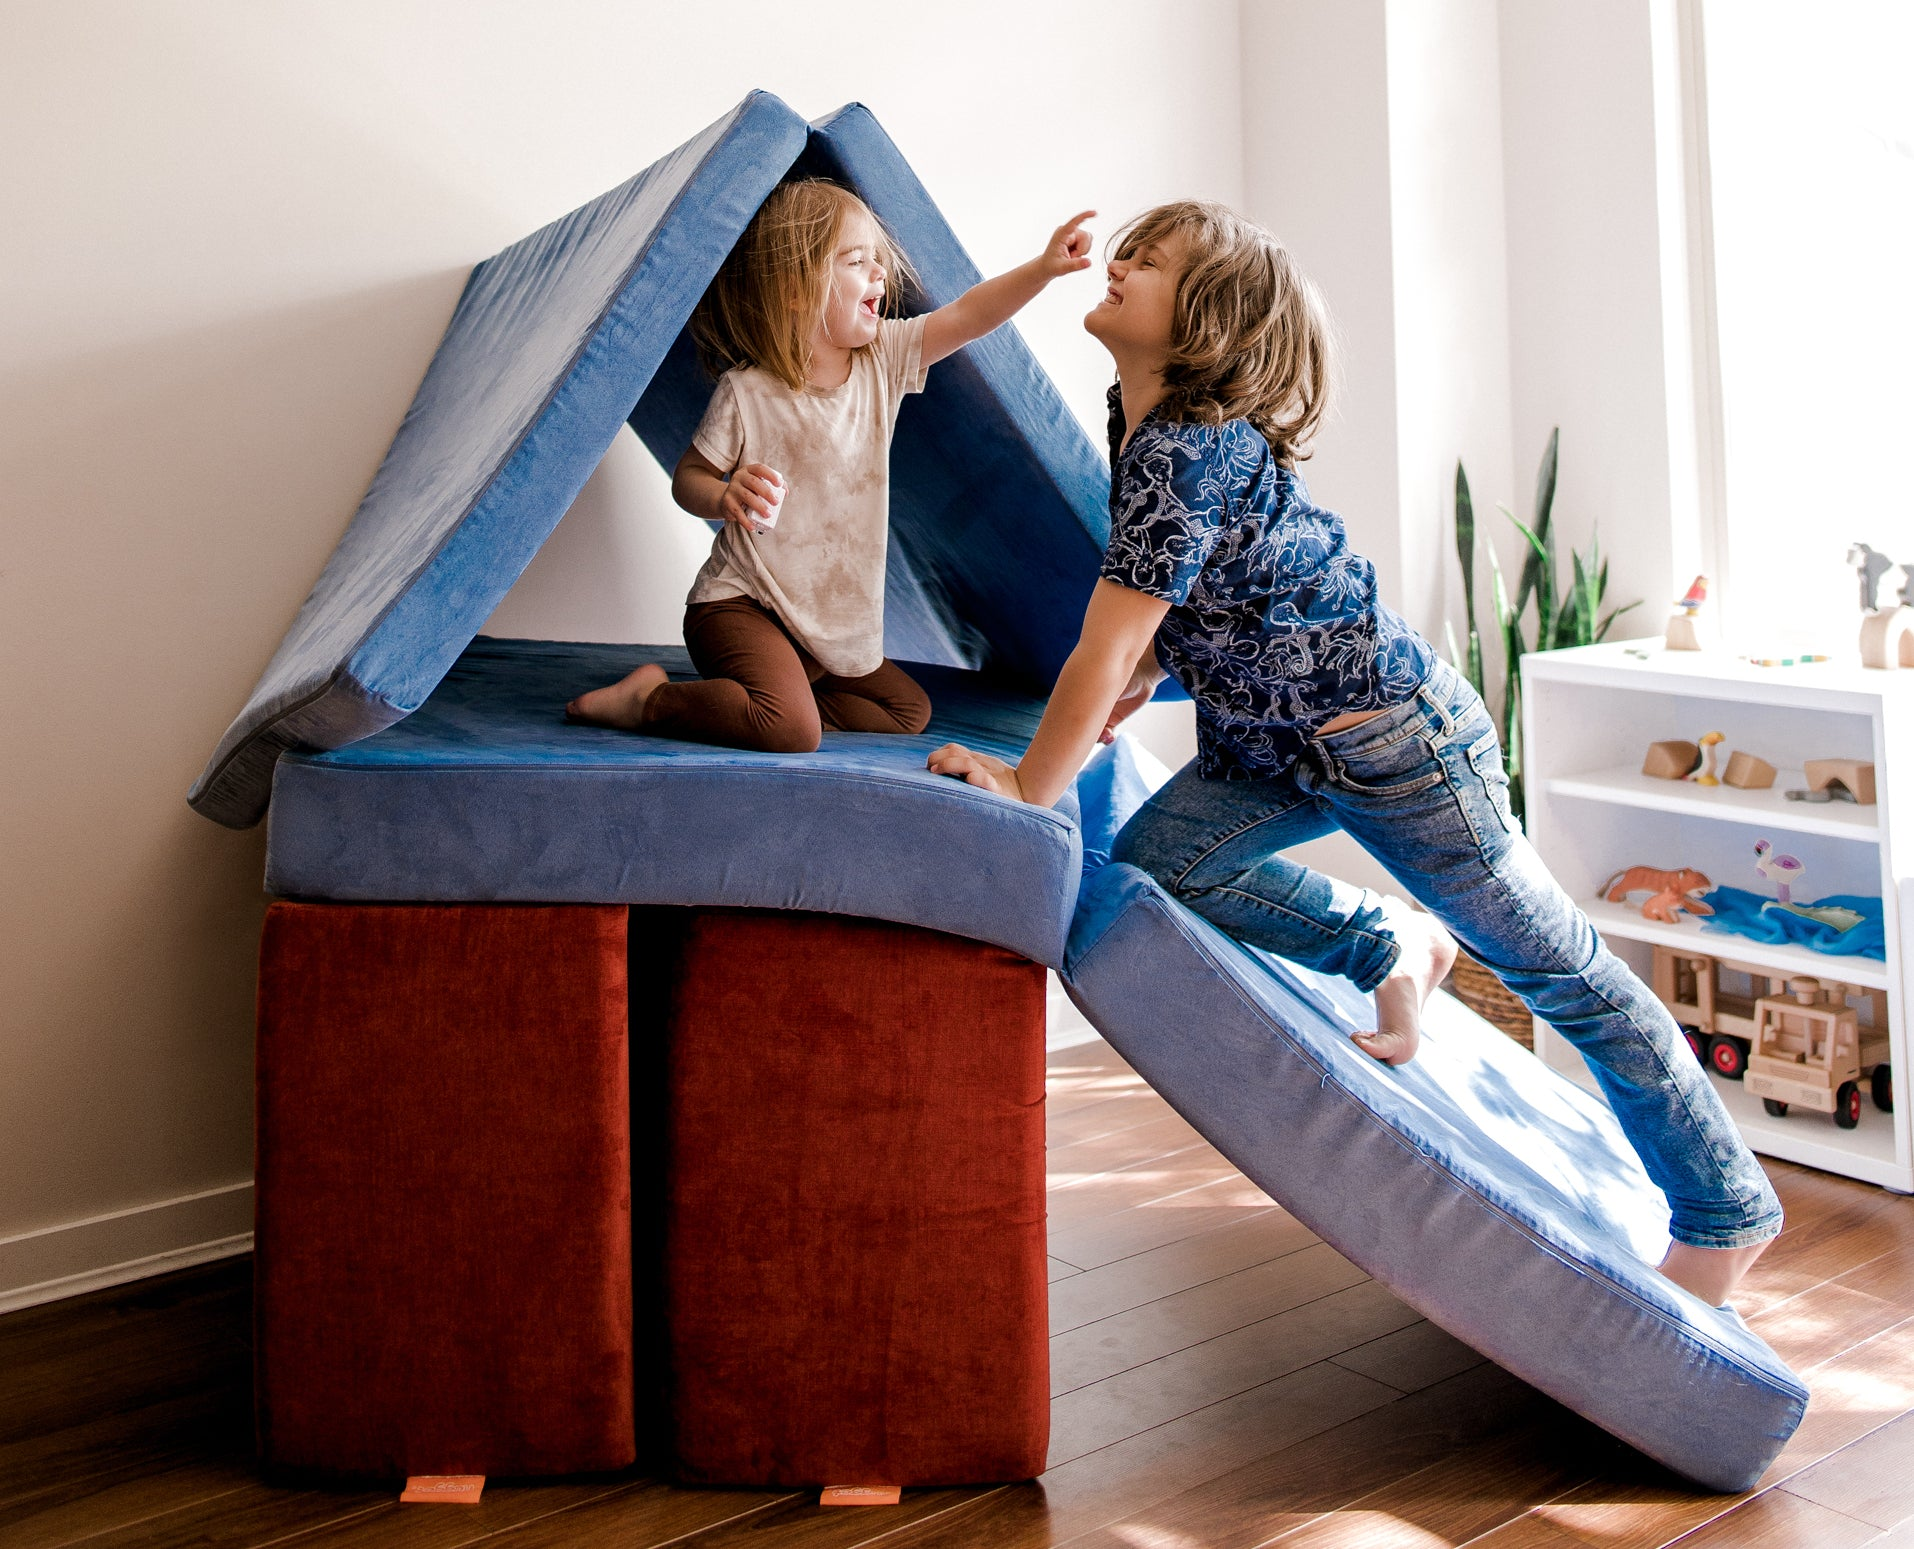 One child sits in a Redwood and Bluejean Nugget fort, older sibling climbs up ramp on hands and knees